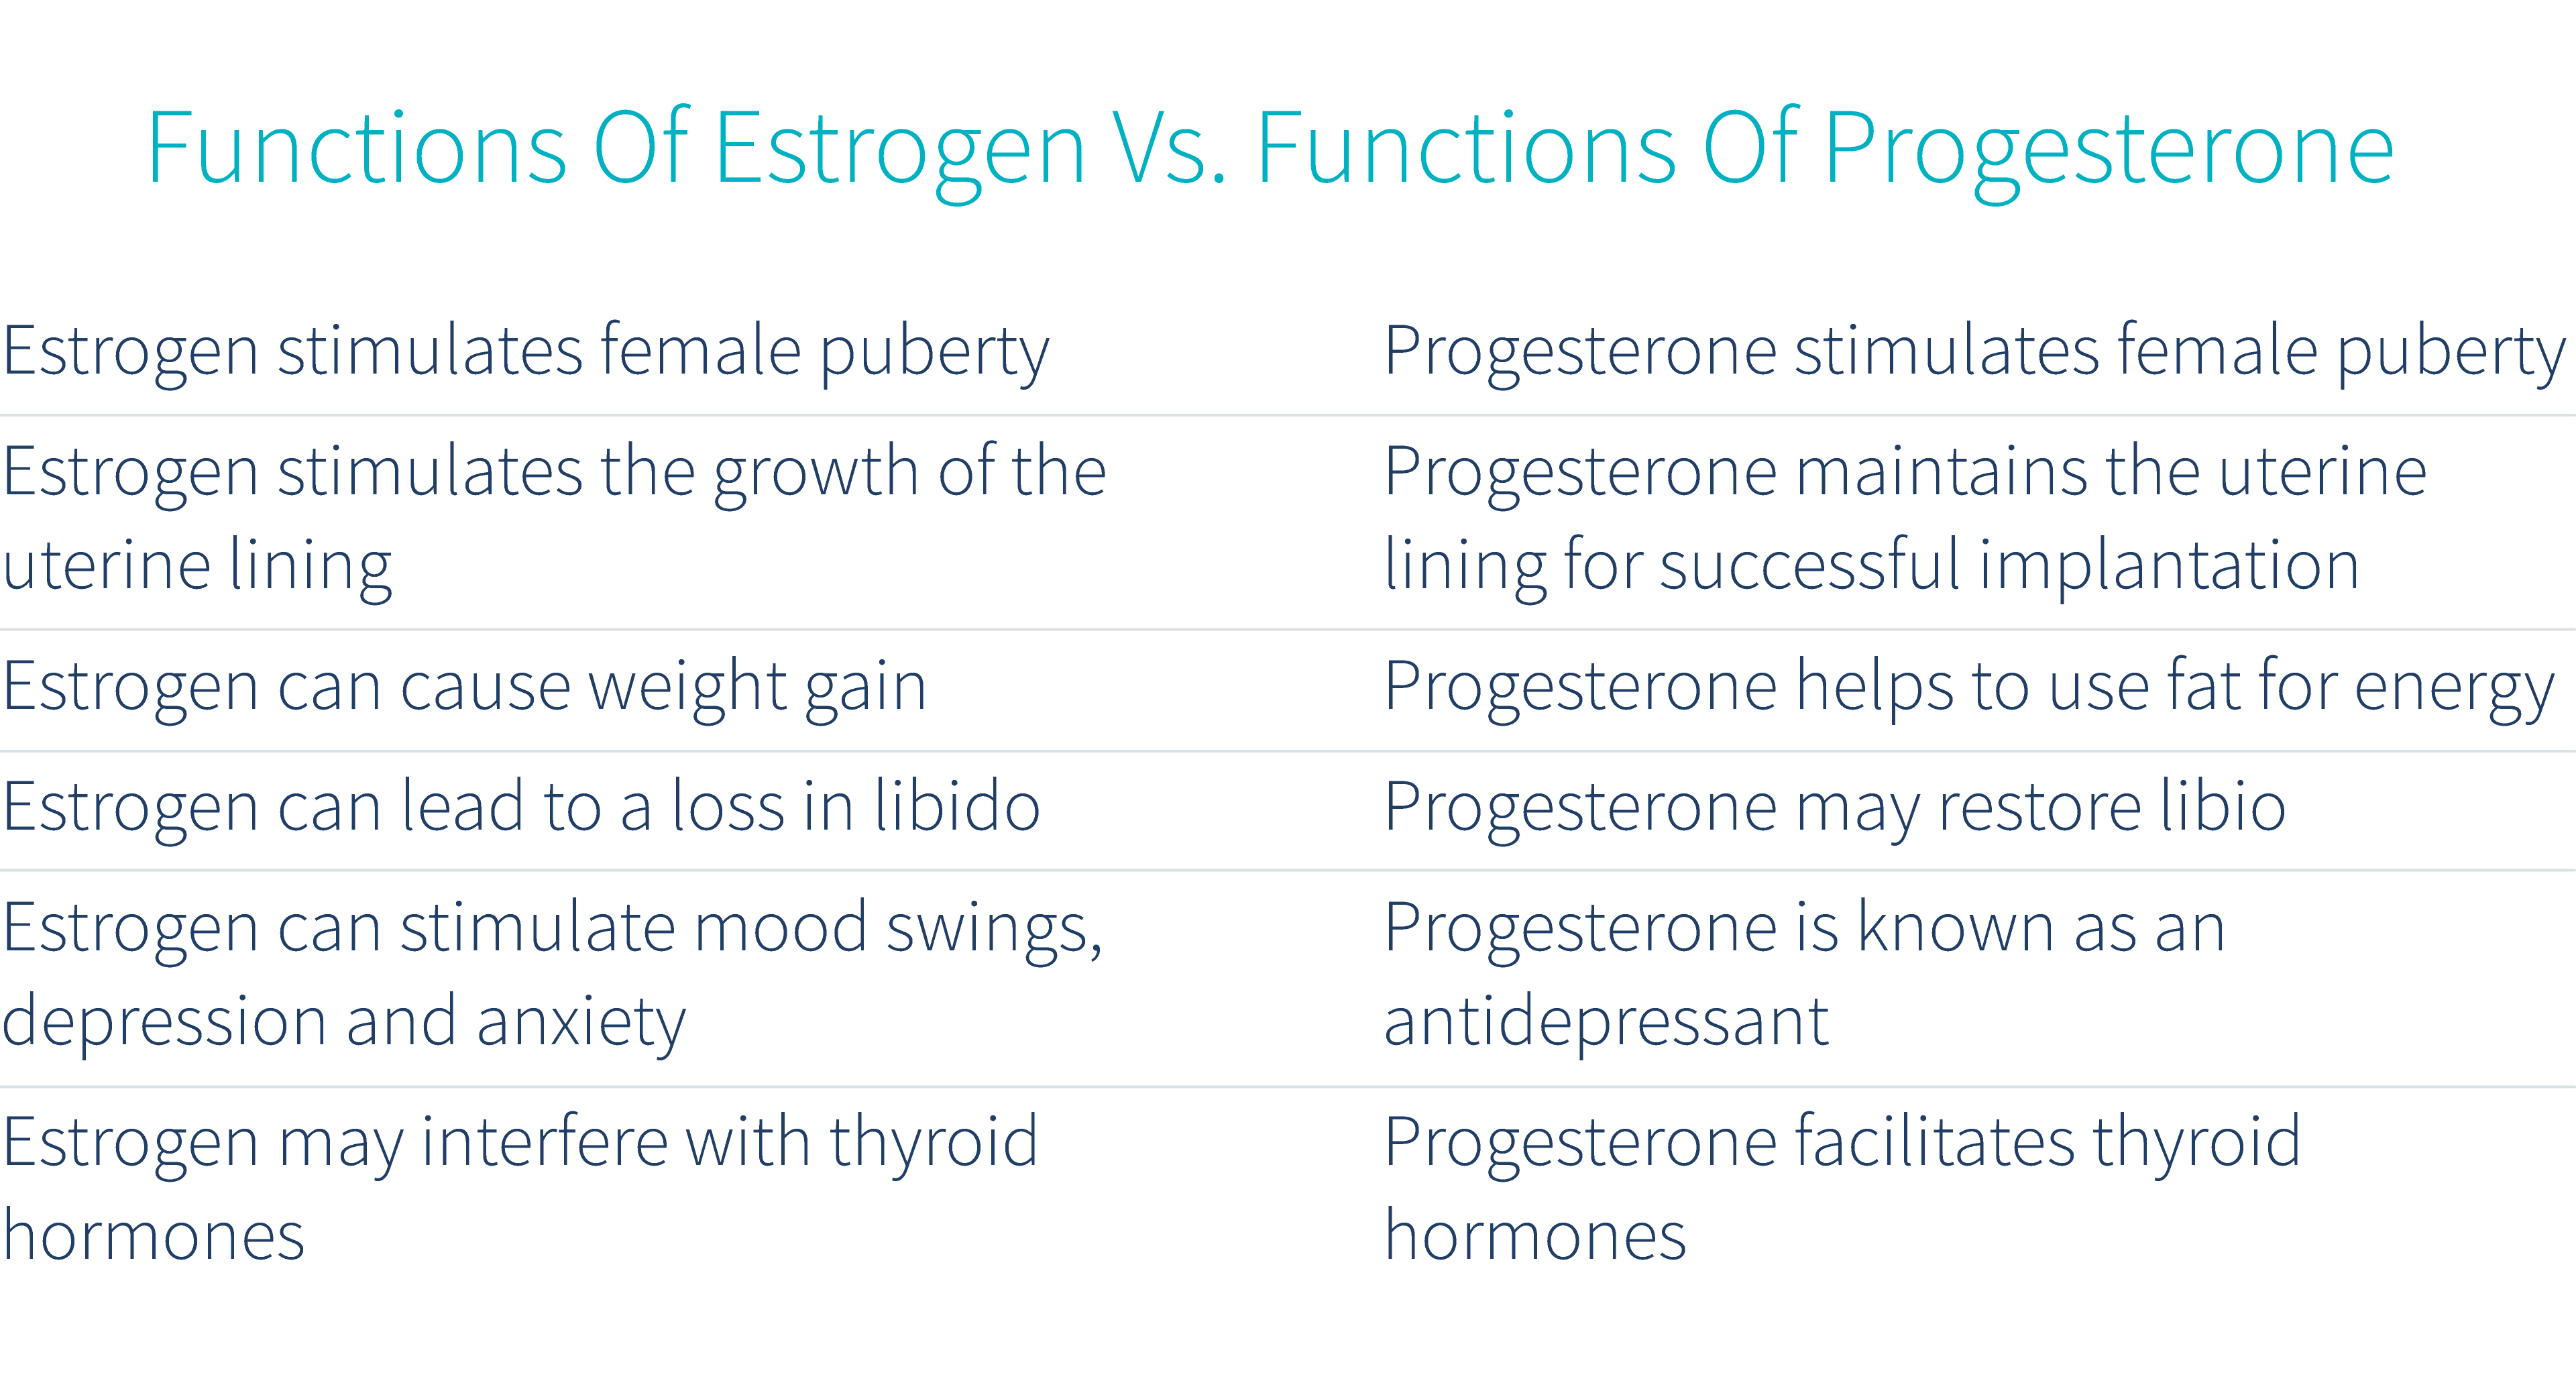 the-functions-of-estrogen-vs-the-functions-of-progesterone-table